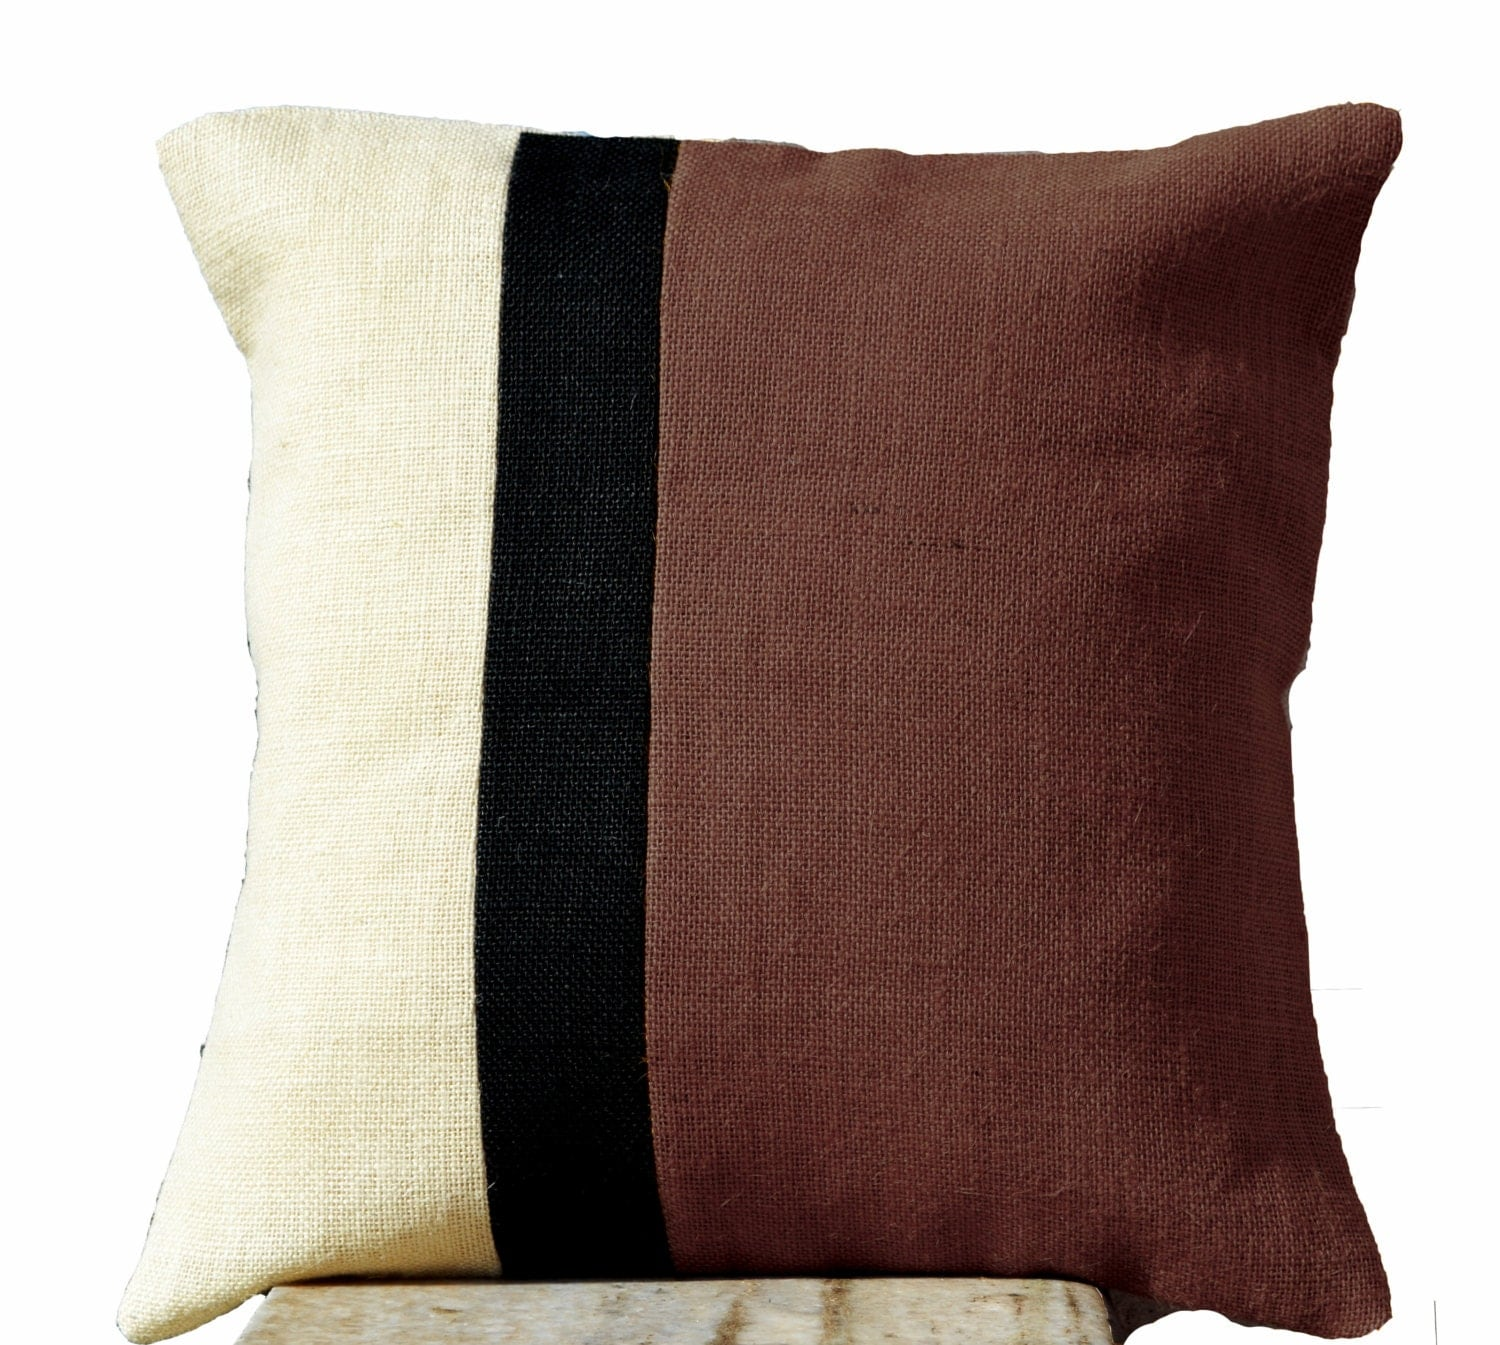 Throw Pillows Taupe : Burlap Taupe Pillow Burlap Pillow color block Taupe